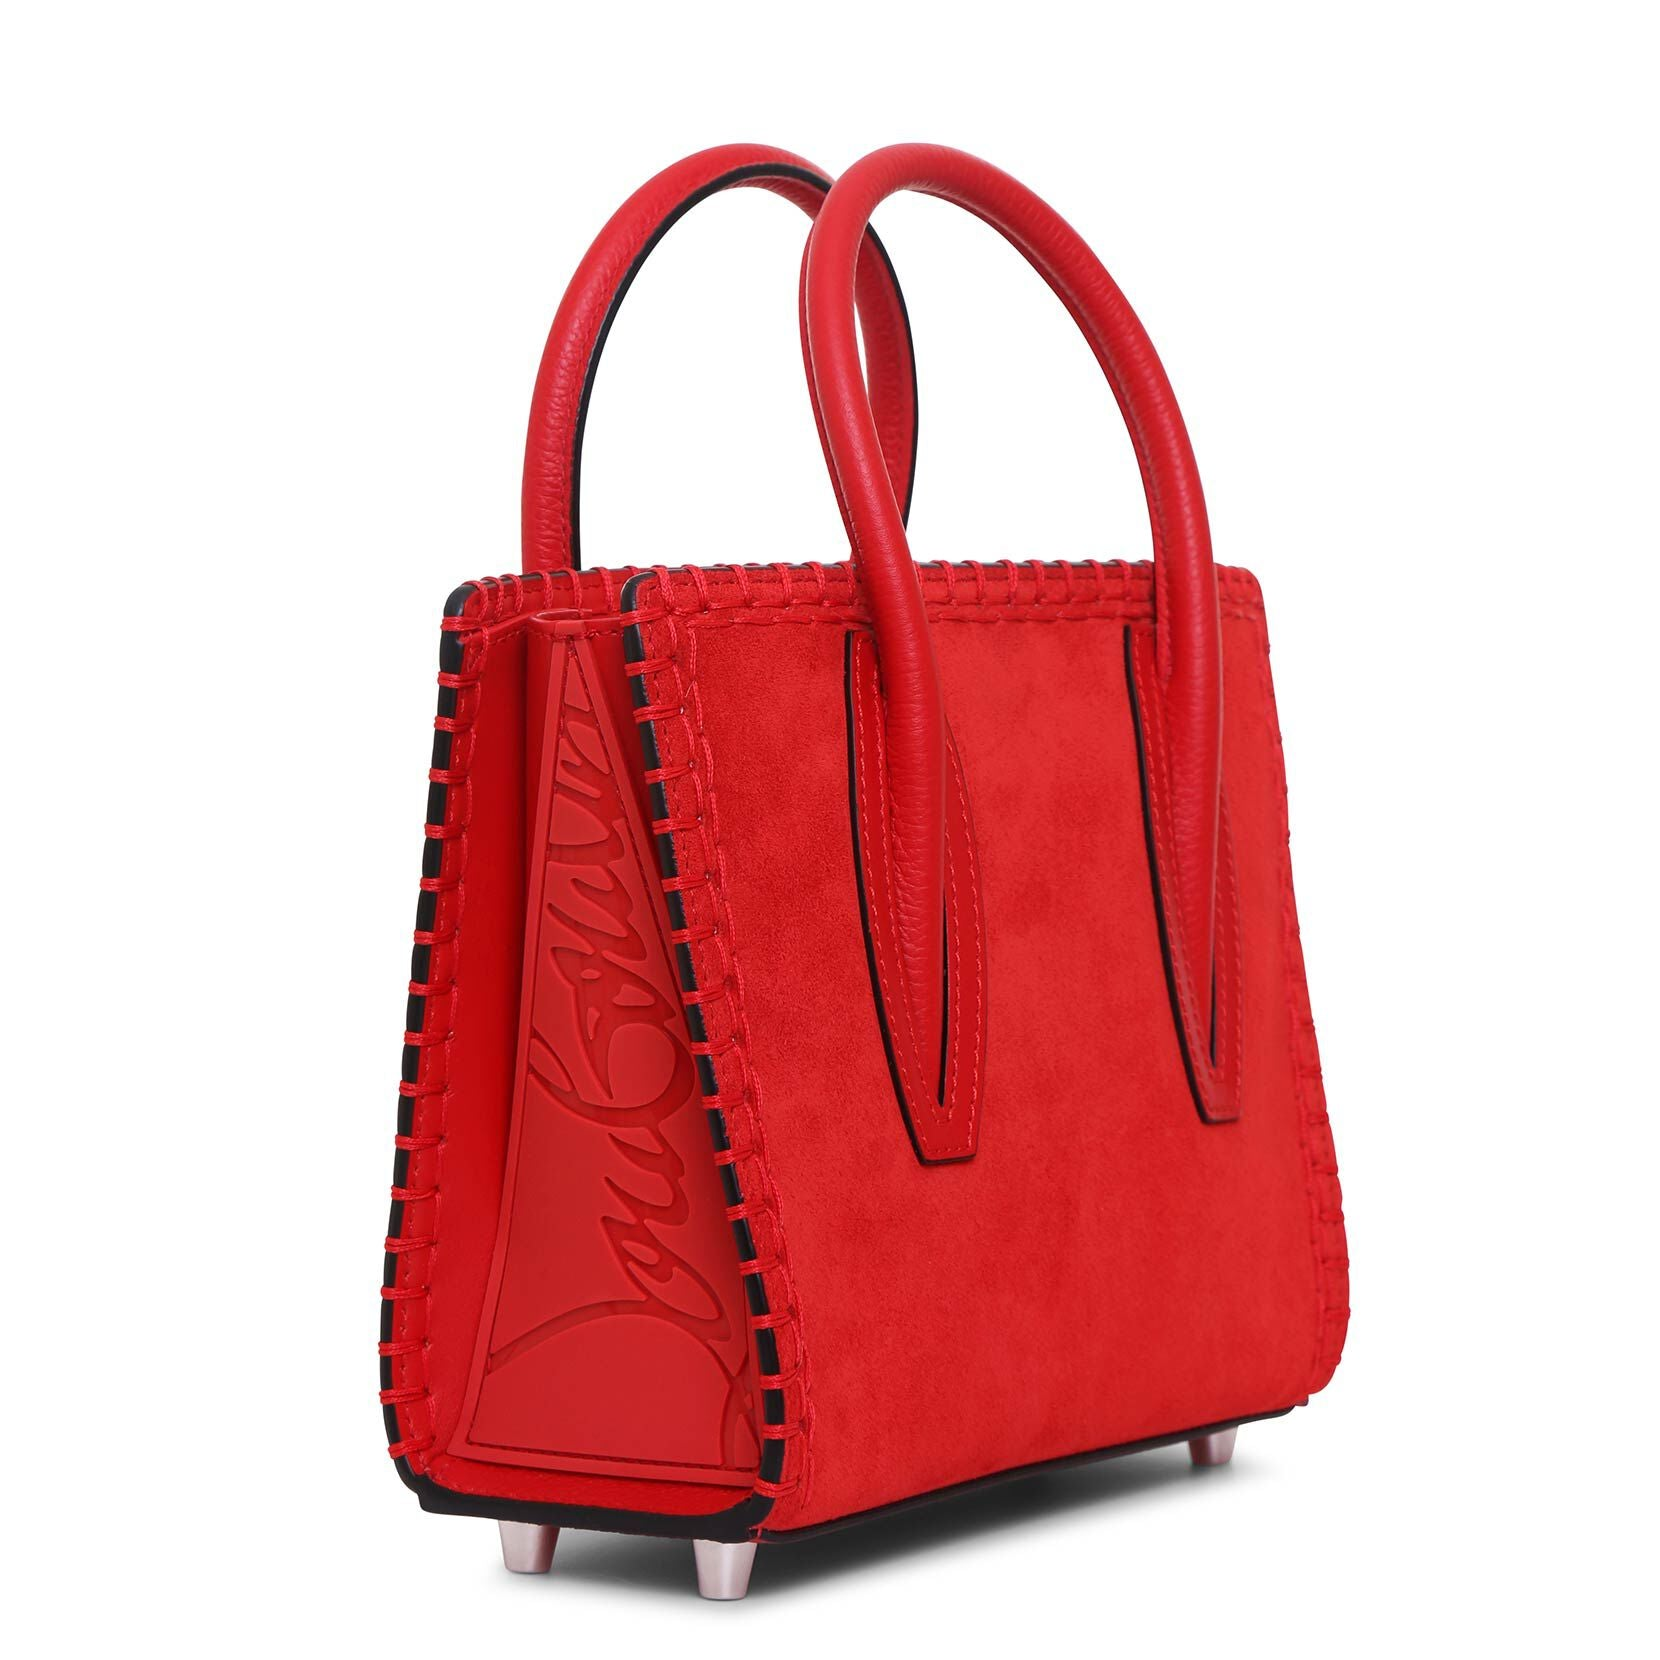 Paloma S mini Loubi red suede tote